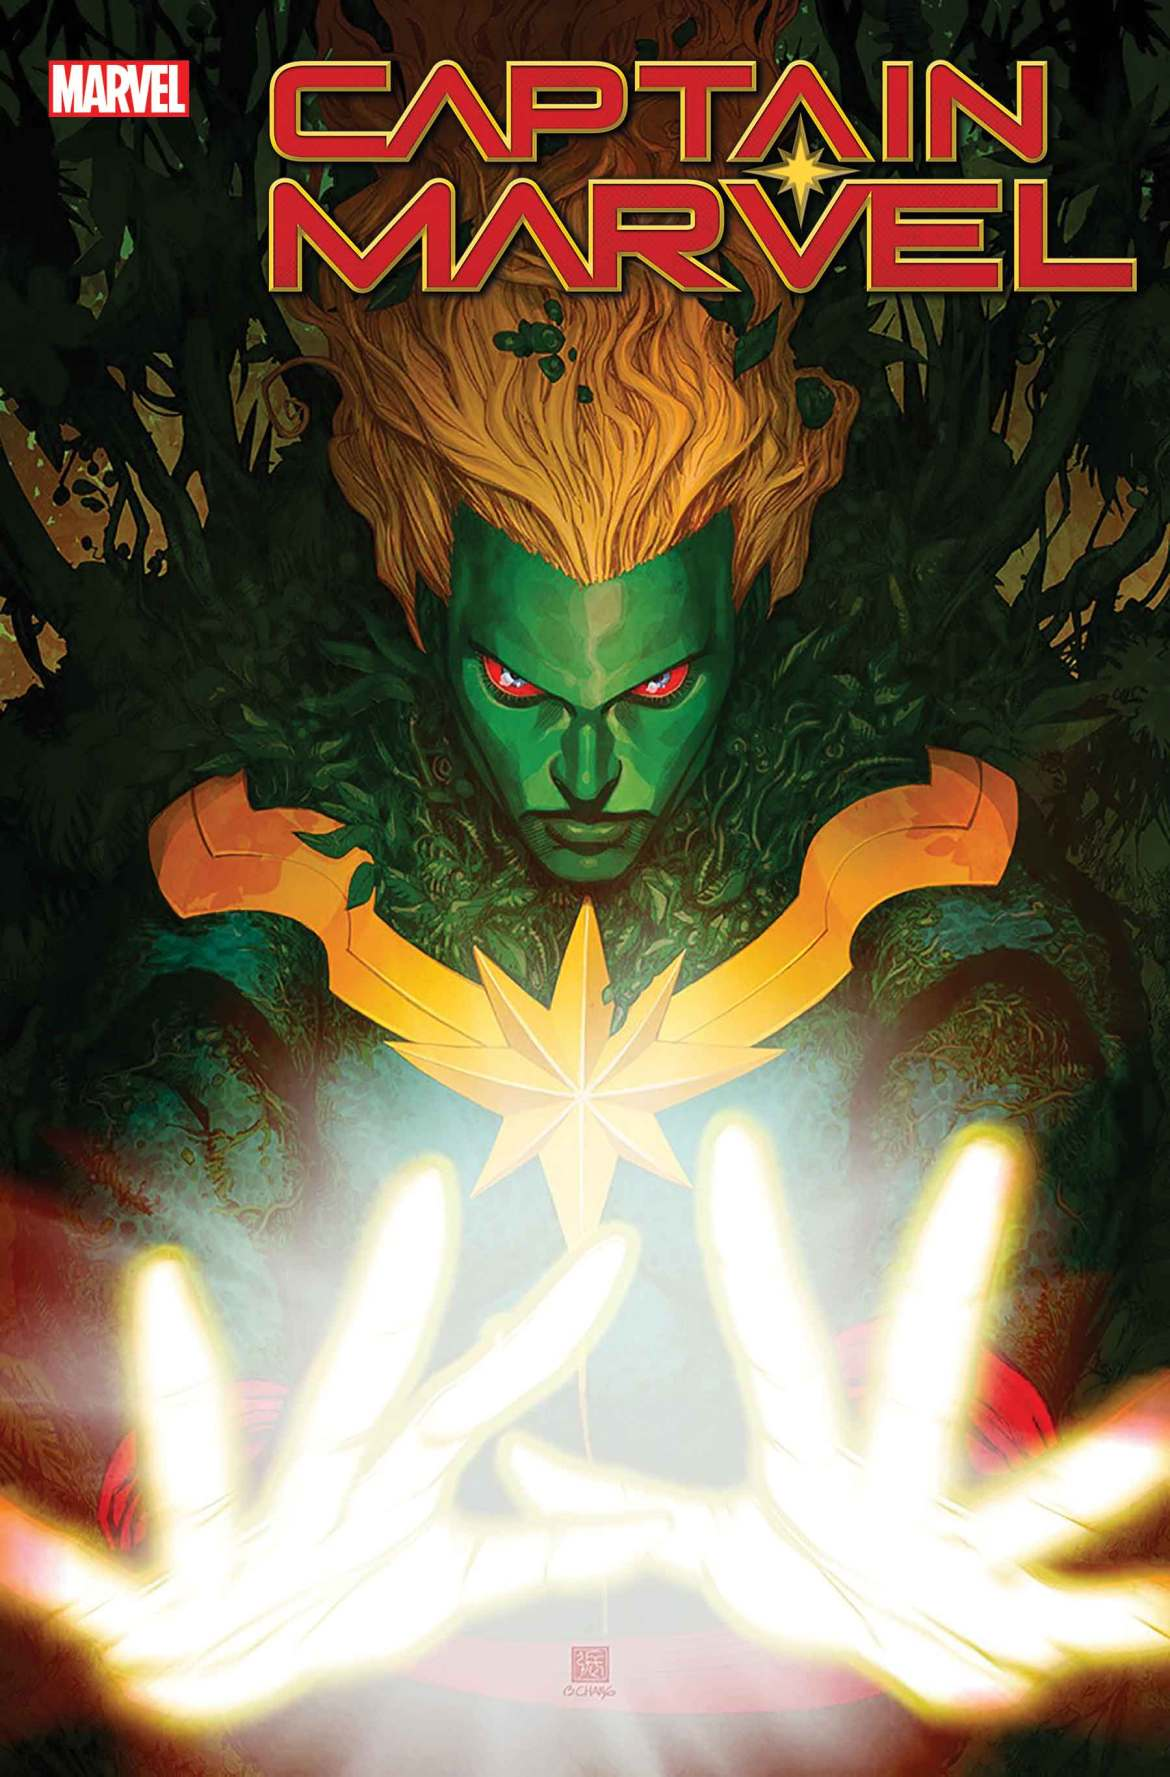 Captain_Marvel_27_MT_VAR Marvel Comics March 2021 Solicitations